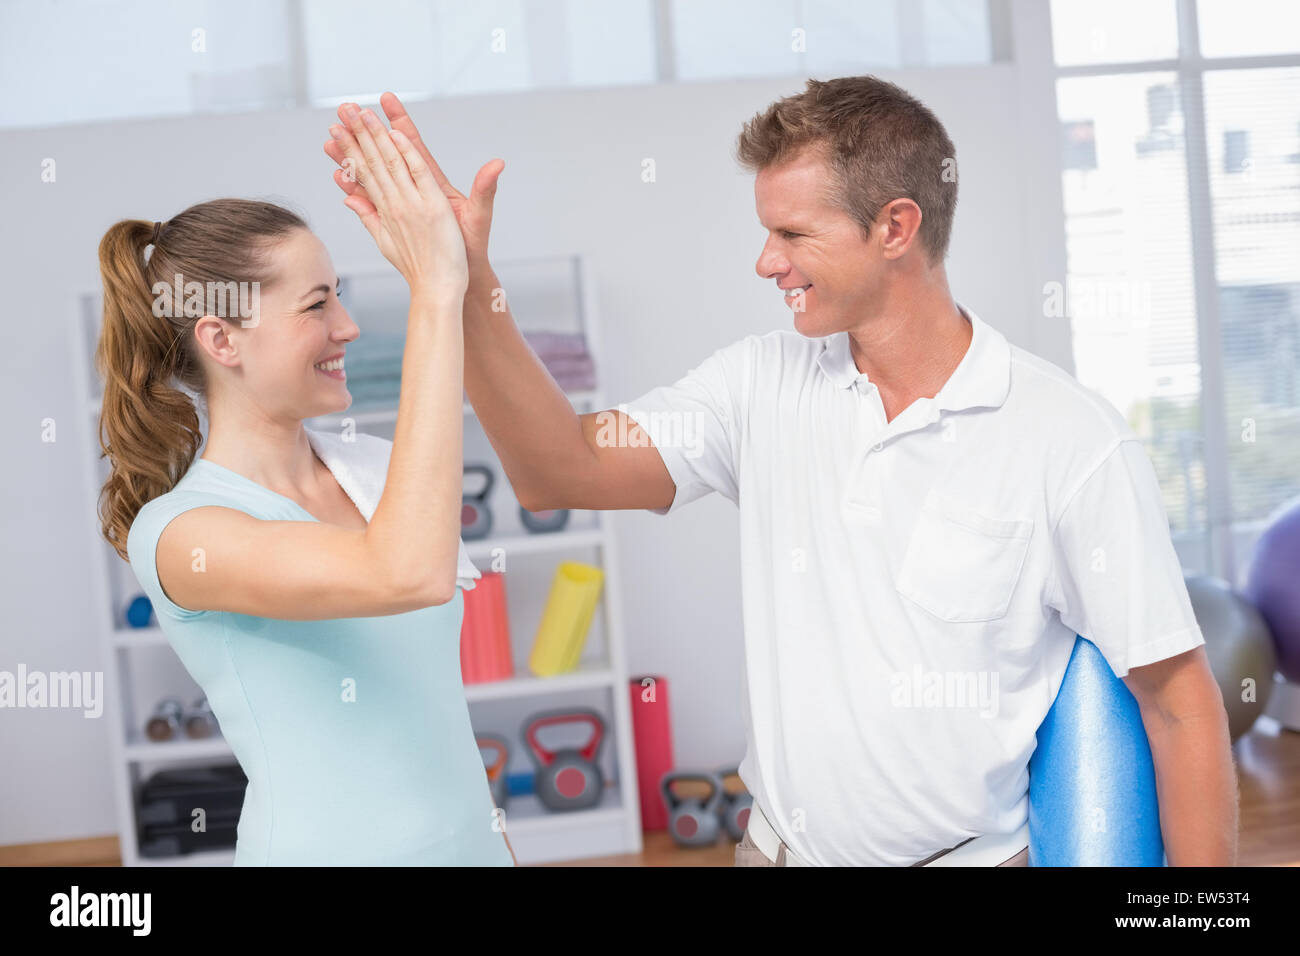 Woman celebrating with her trainer - Stock Image